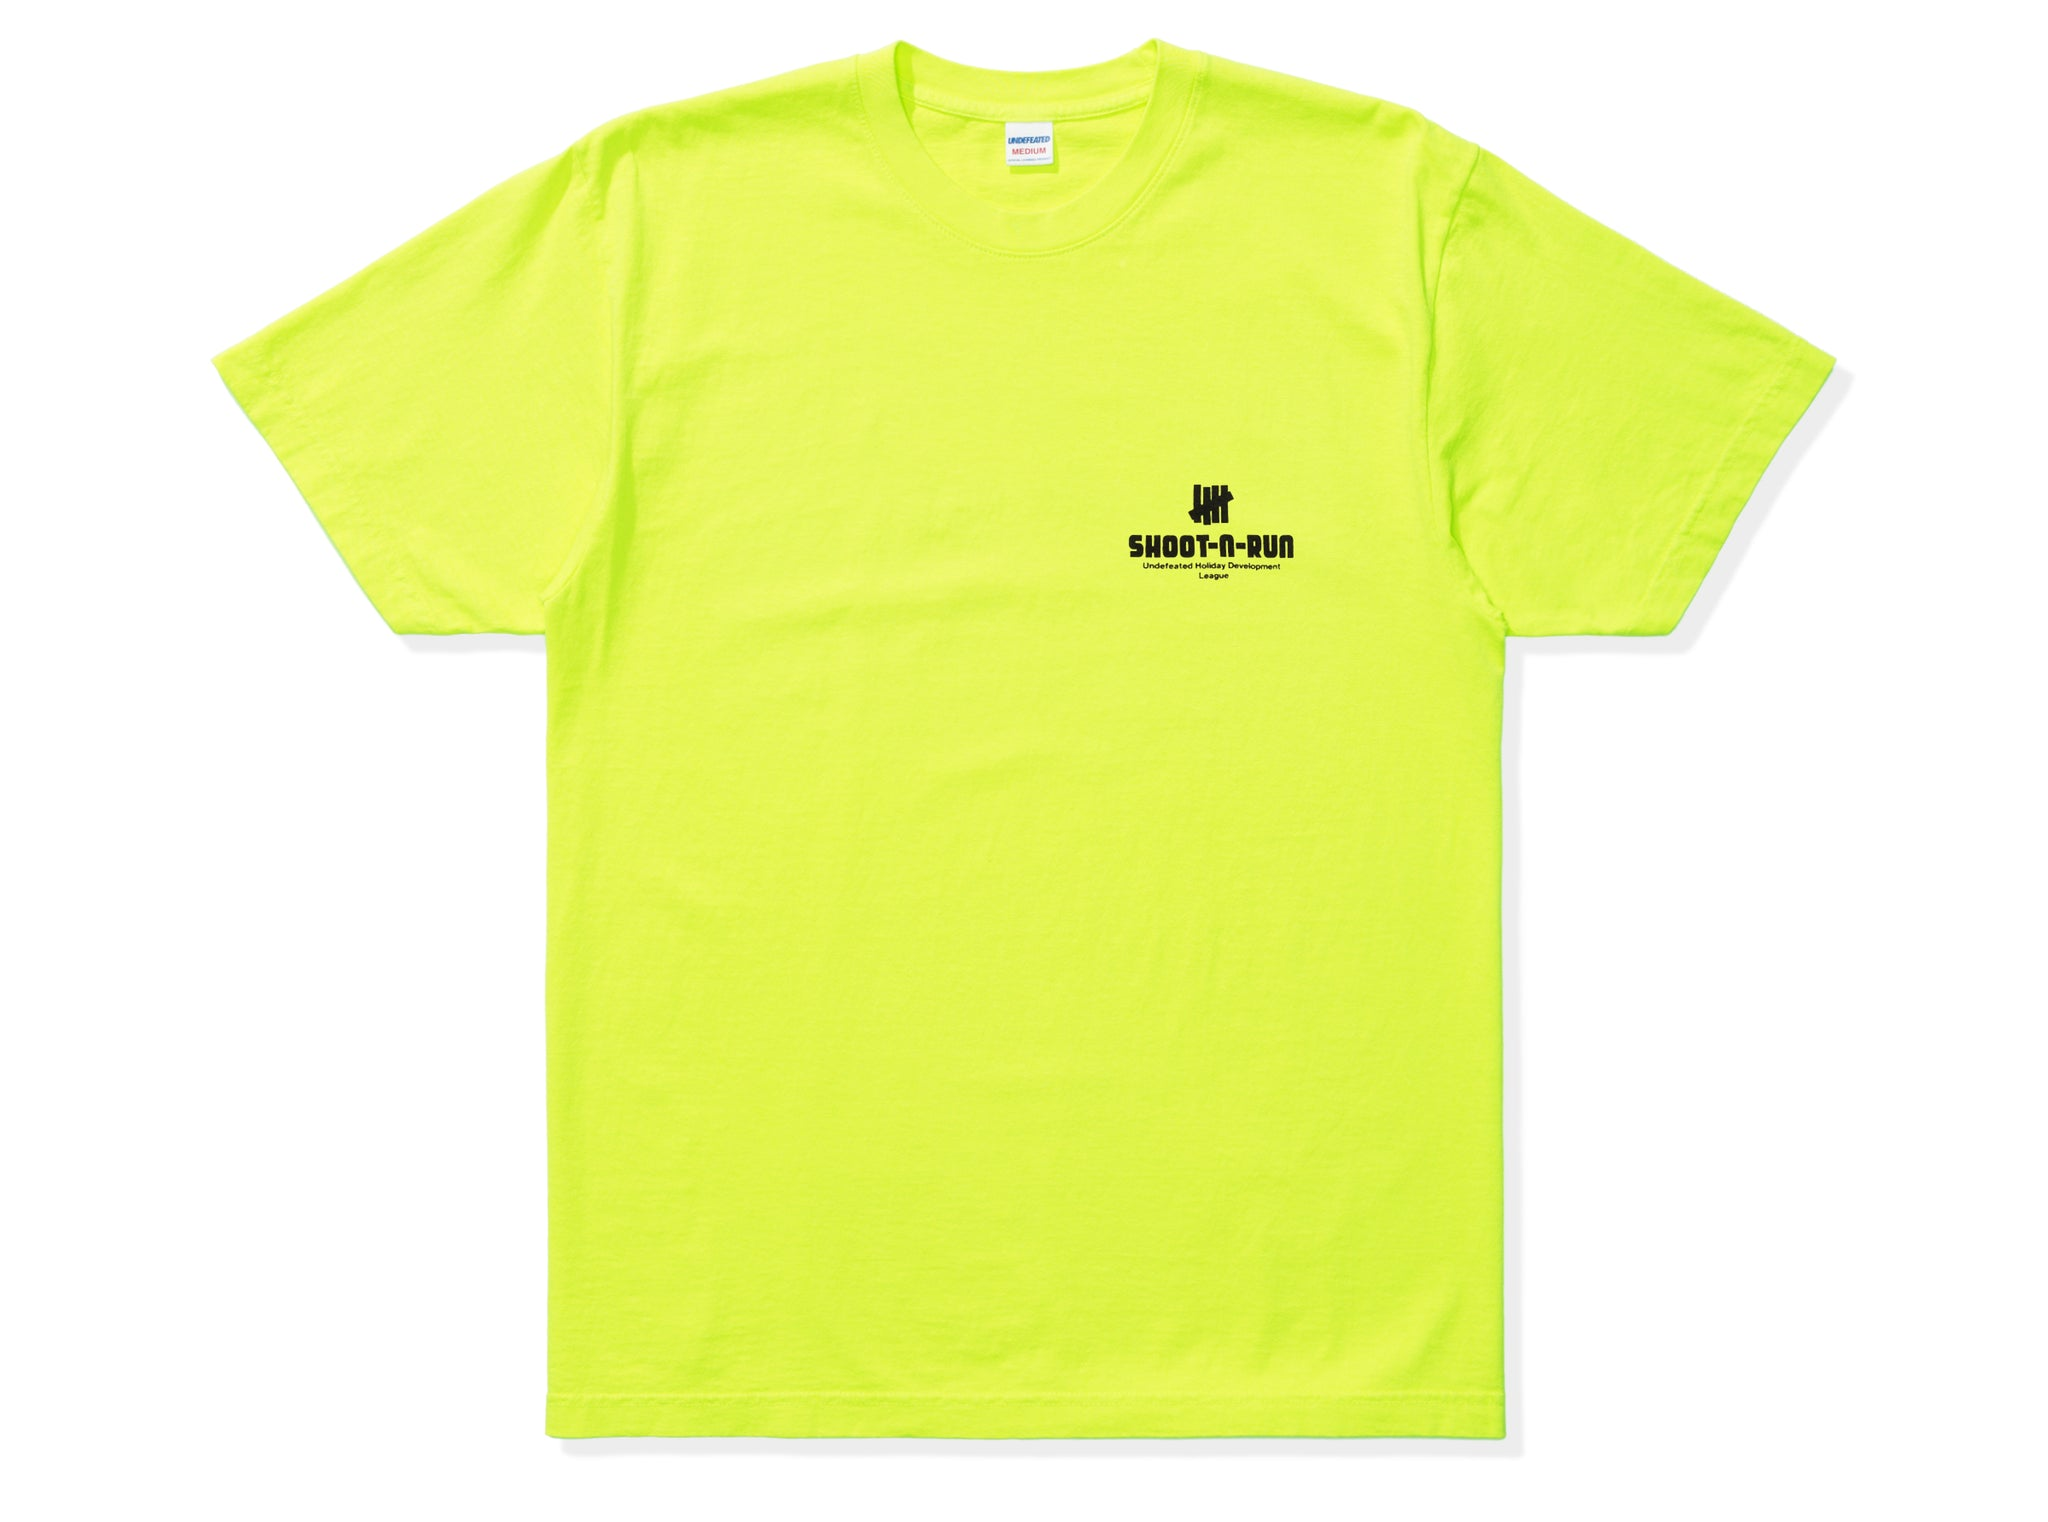 UNDEFEATED SHOOT-N-RUN S/S TEE